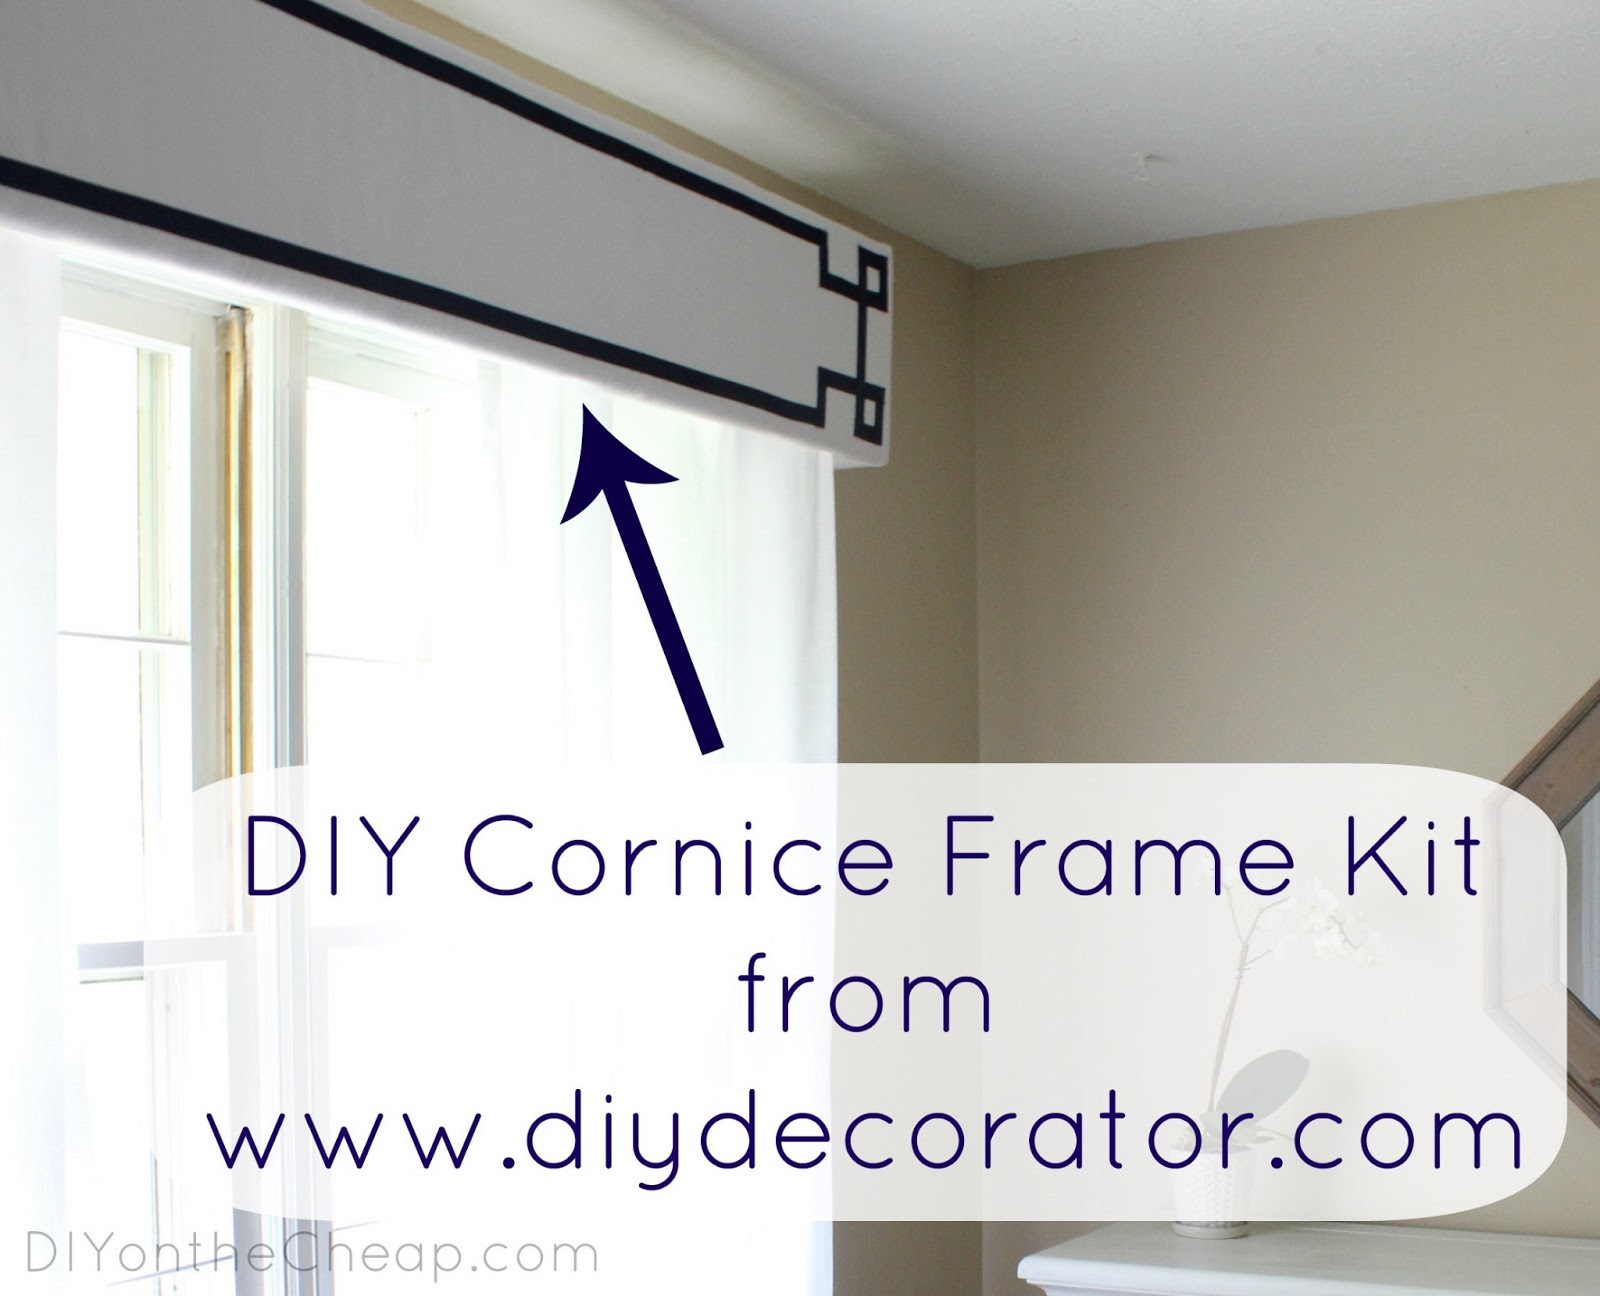 New Window Treatments Diy Cornice Frame Kit Review